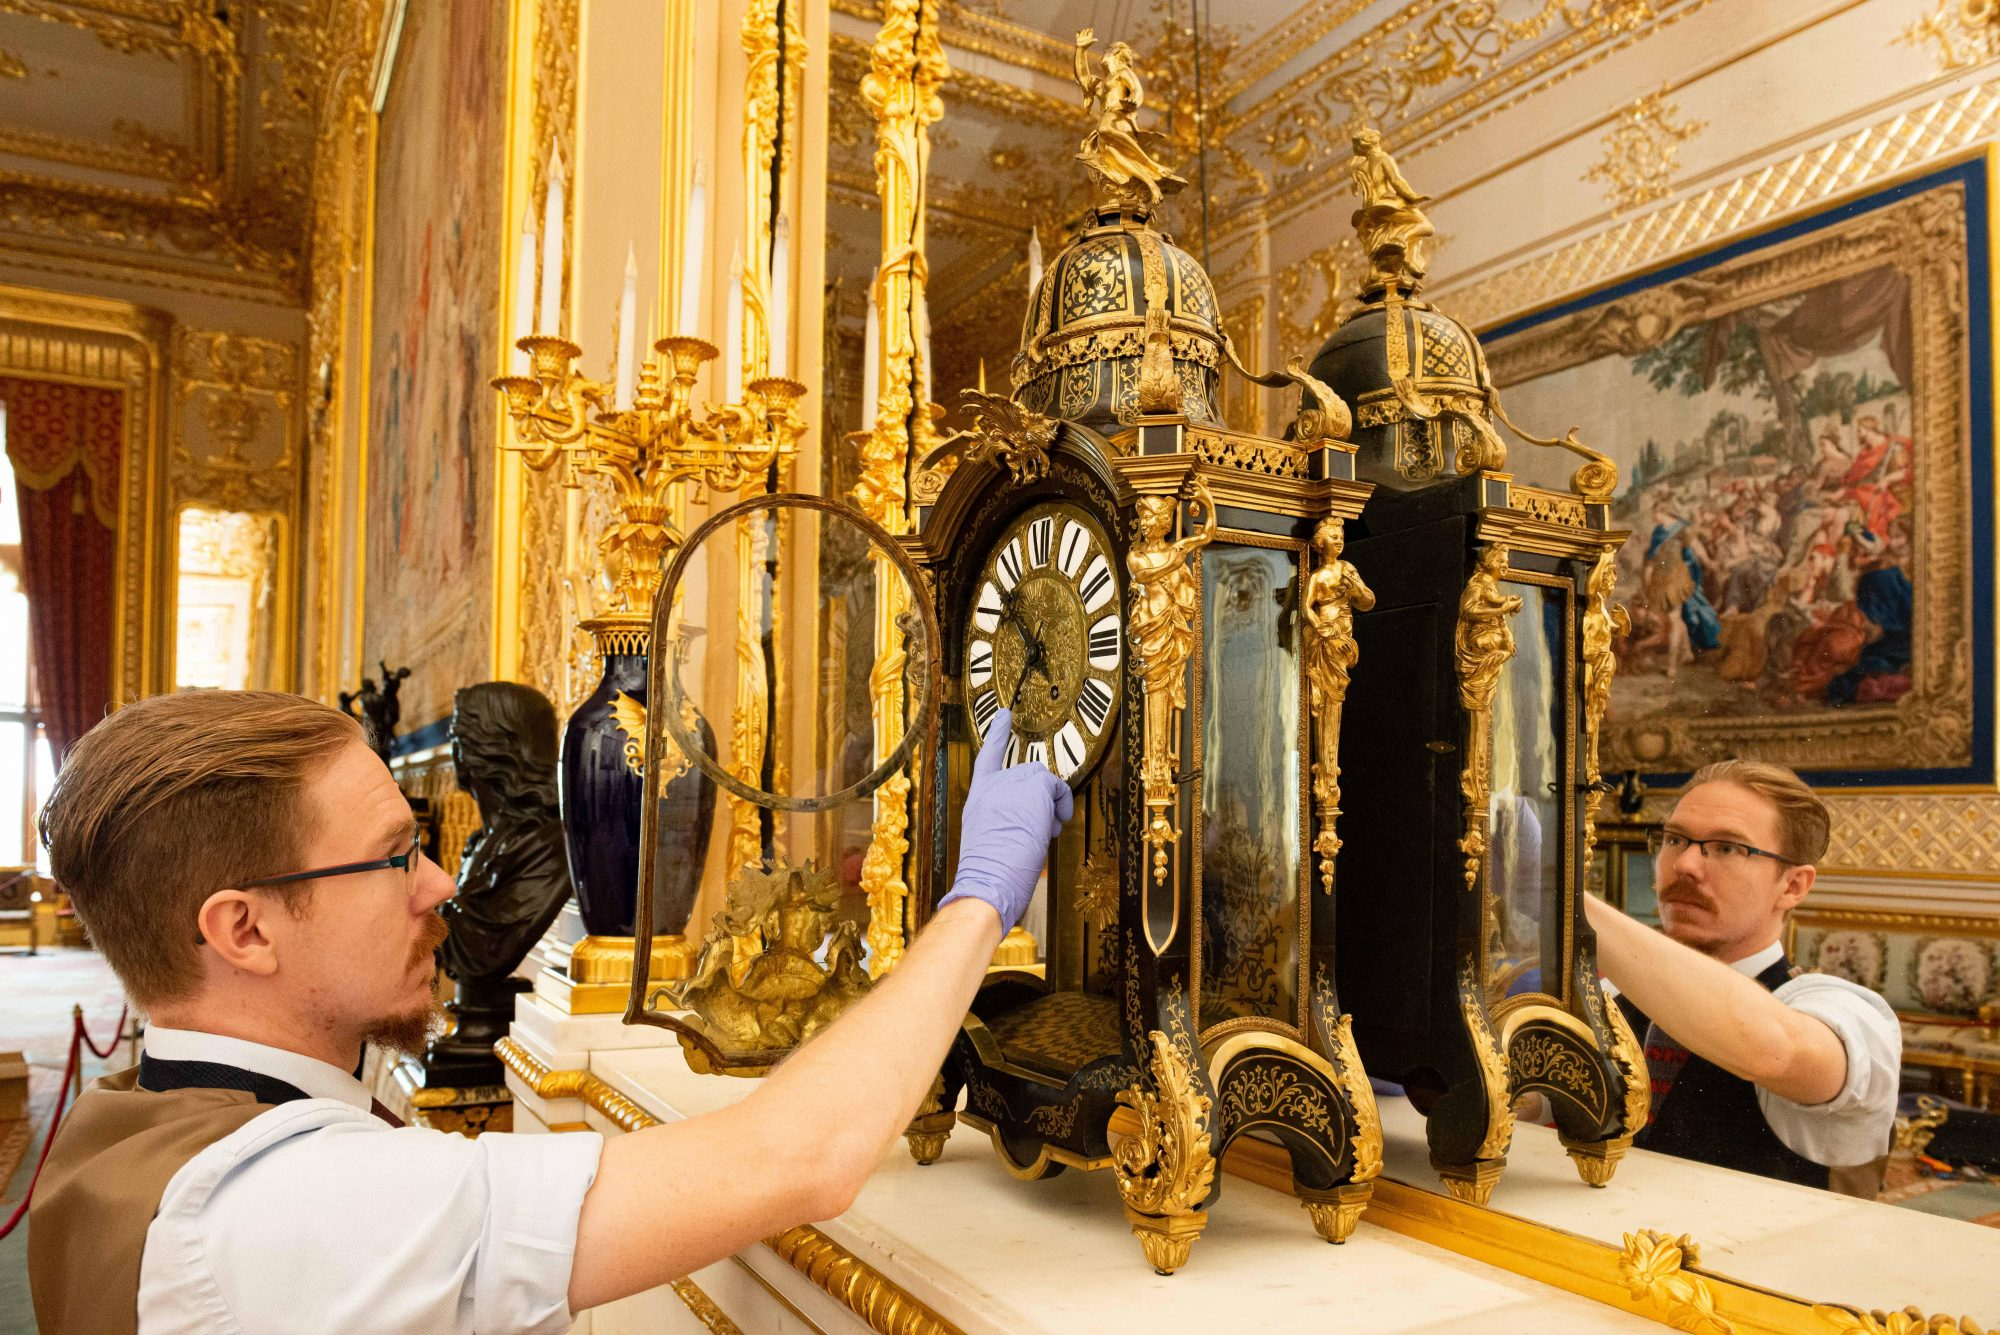 Changing the clocks at the official residences of the Queen